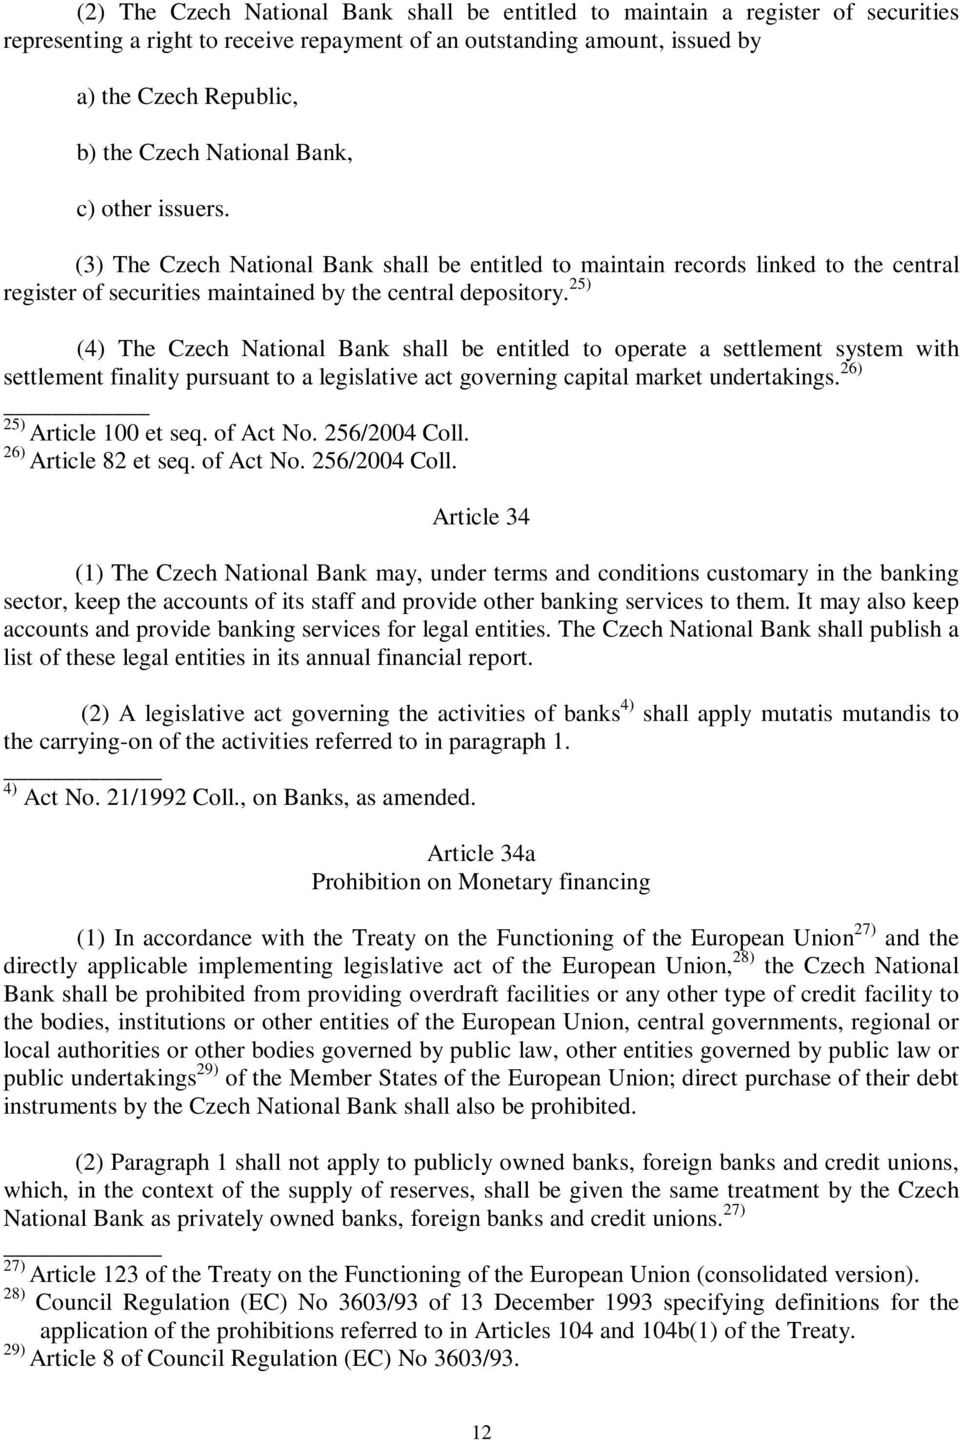 25) (4) The Czech National Bank shall be entitled to operate a settlement system with settlement finality pursuant to a legislative act governing capital market undertakings.